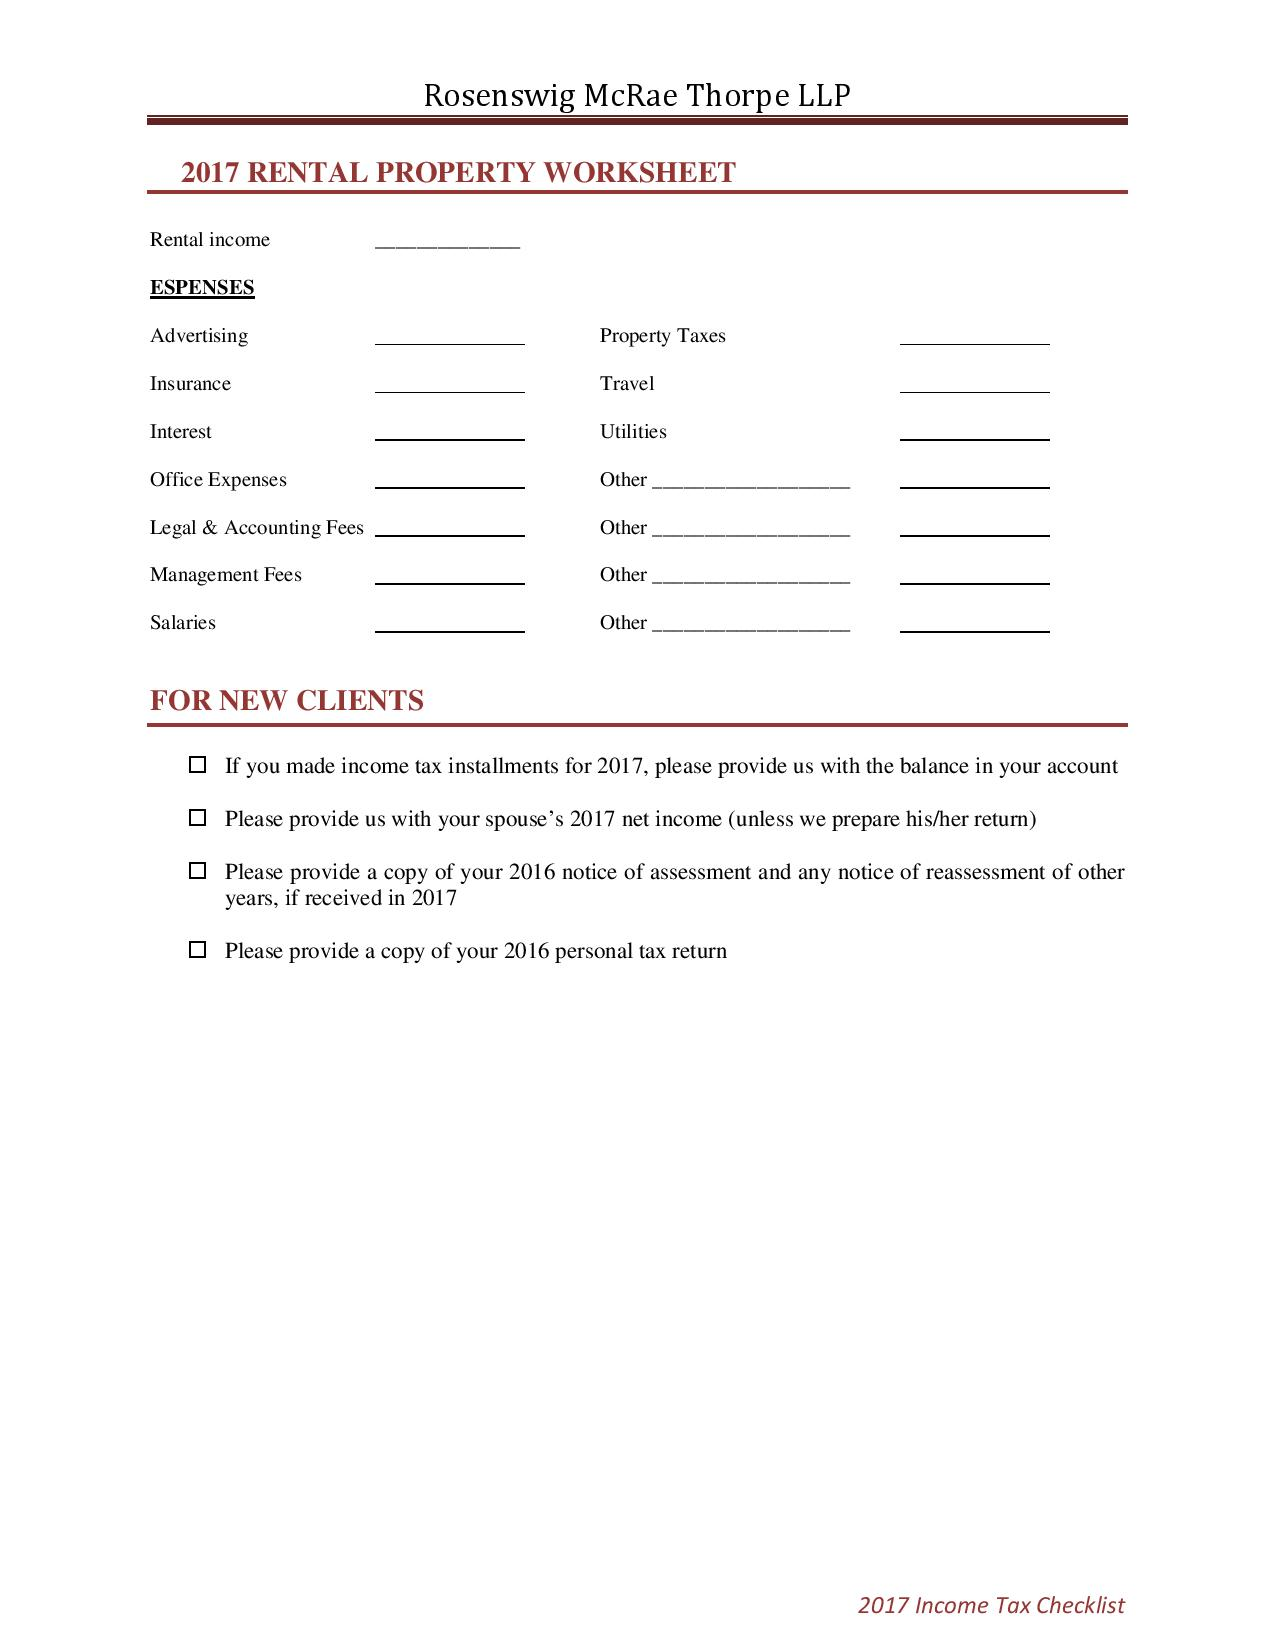 2017 PERSONAL INCOME TAX CHECKLIST (1)-page-006.jpg